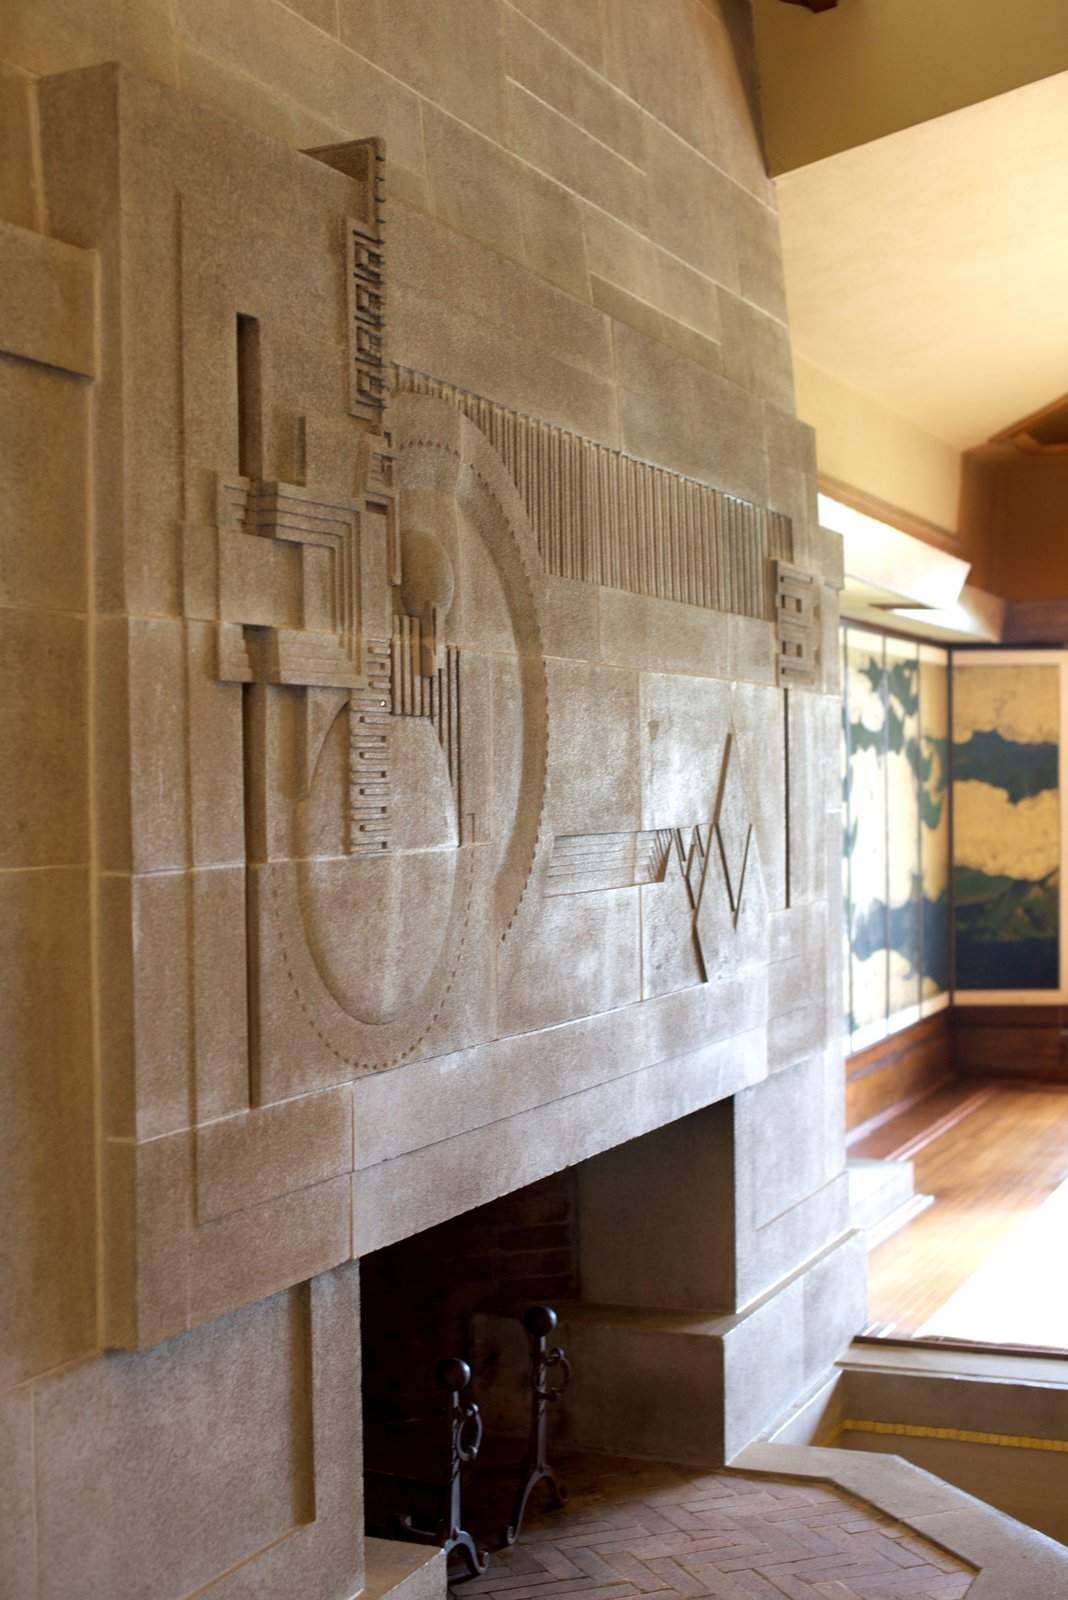 One of the standout moments in the space is the cast concrete fireplace, which is considered to be one of Wright's greatest two-dimensional works of art. Depicting an abstract landscape, the detail is spectacular, yet leaves much to the imagination while incorporating a bit of the hollyhock flower. Wright completed the fireplace with a skylight above and a moat in front that was designed to hold a pool of water. This was originally part of an elaborate water scheme to run throughout the property, though it was never completed. Regardless, the fireplace thus incorporated the four elements of nature: light, earth, fire, and water—making it a brilliant vision, even if it never ended up the way it was fully imagined.  Photo 6 of 14 in Iconic Perspectives: Frank Lloyd Wright's Hollyhock House